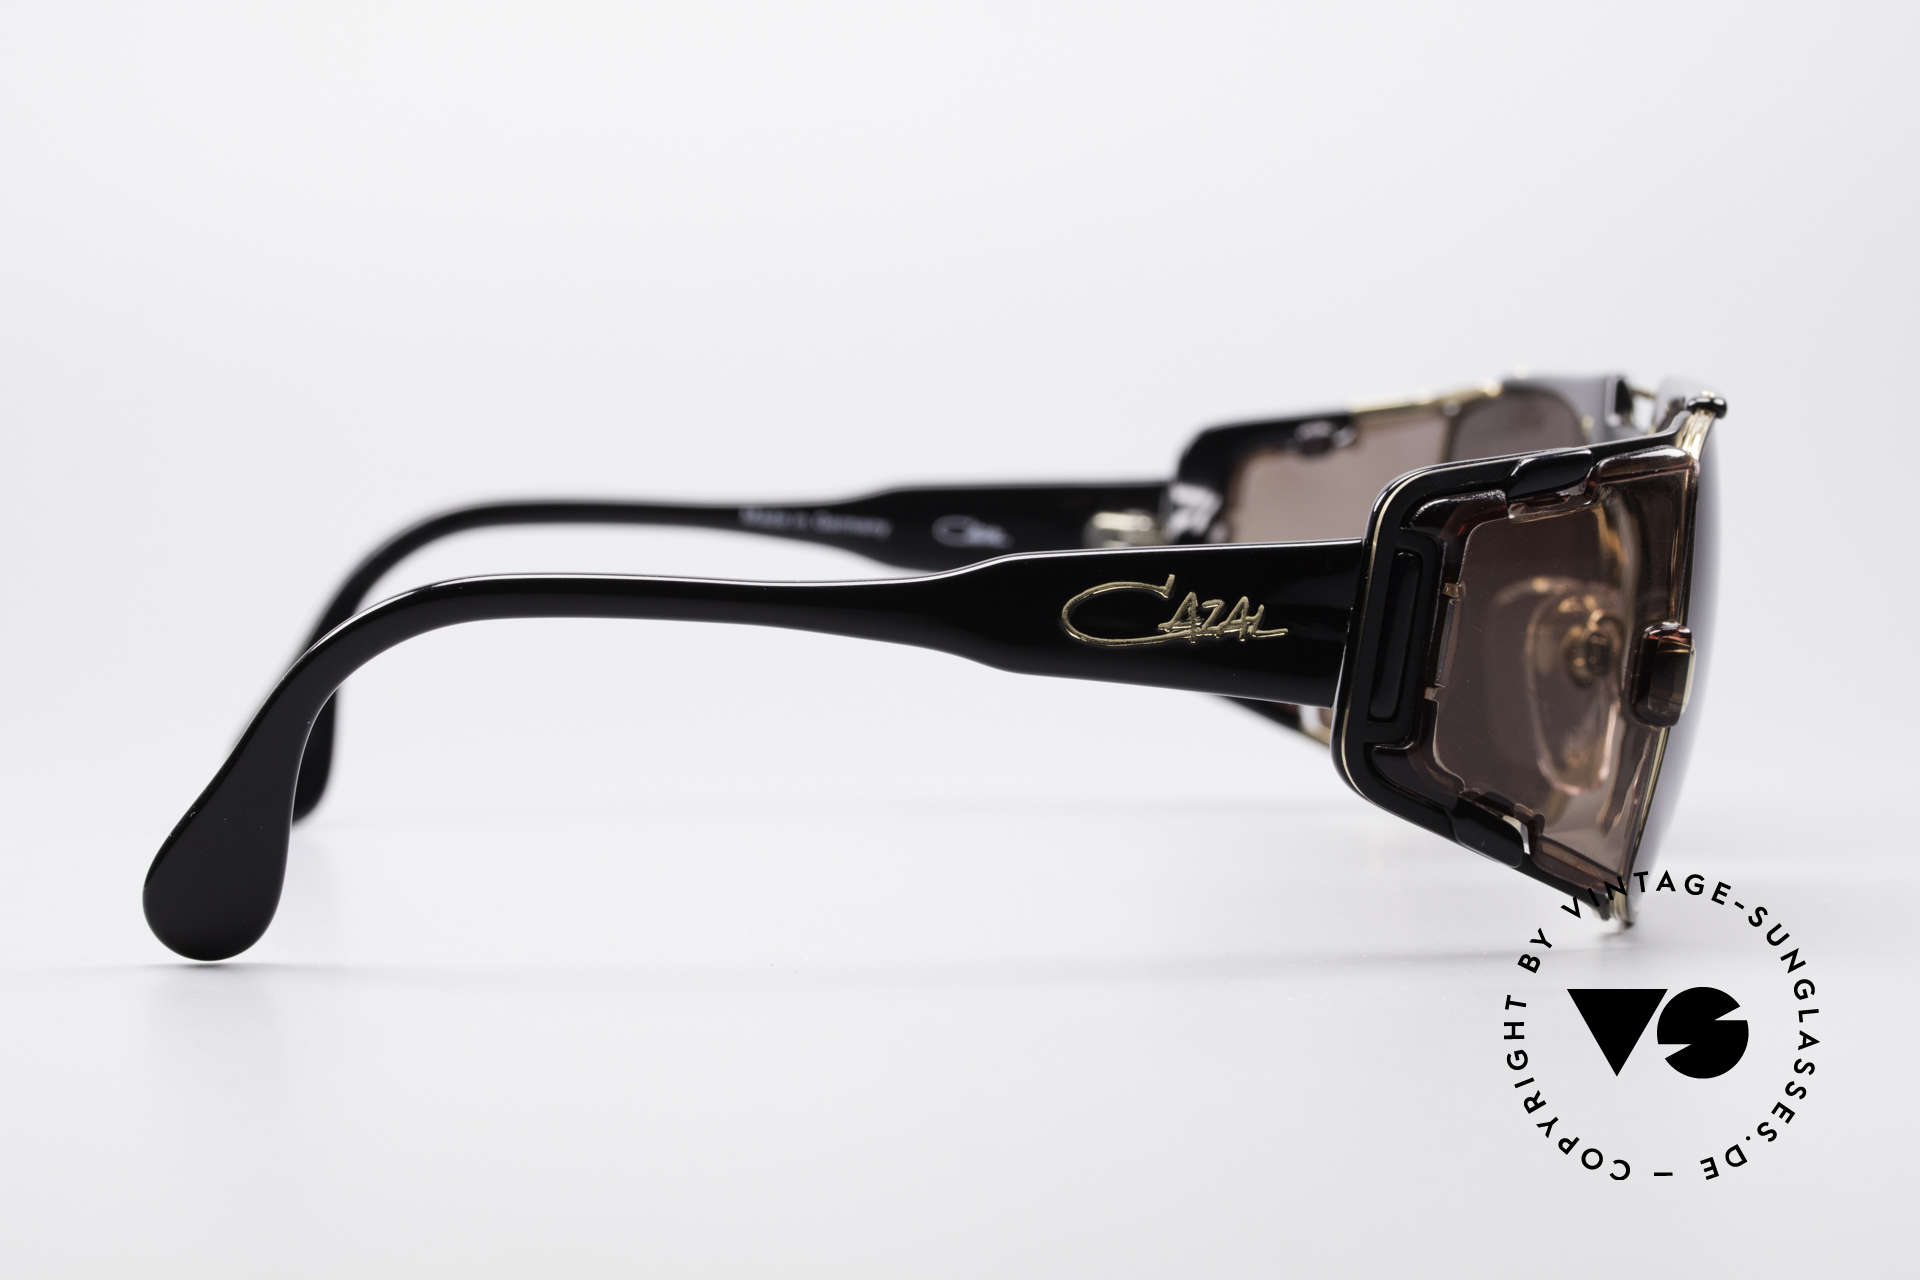 Cazal 963 True Vintage Hip Hop Shades, popular accessory in the US Hip Hop scene; truly vintage, Made for Men and Women